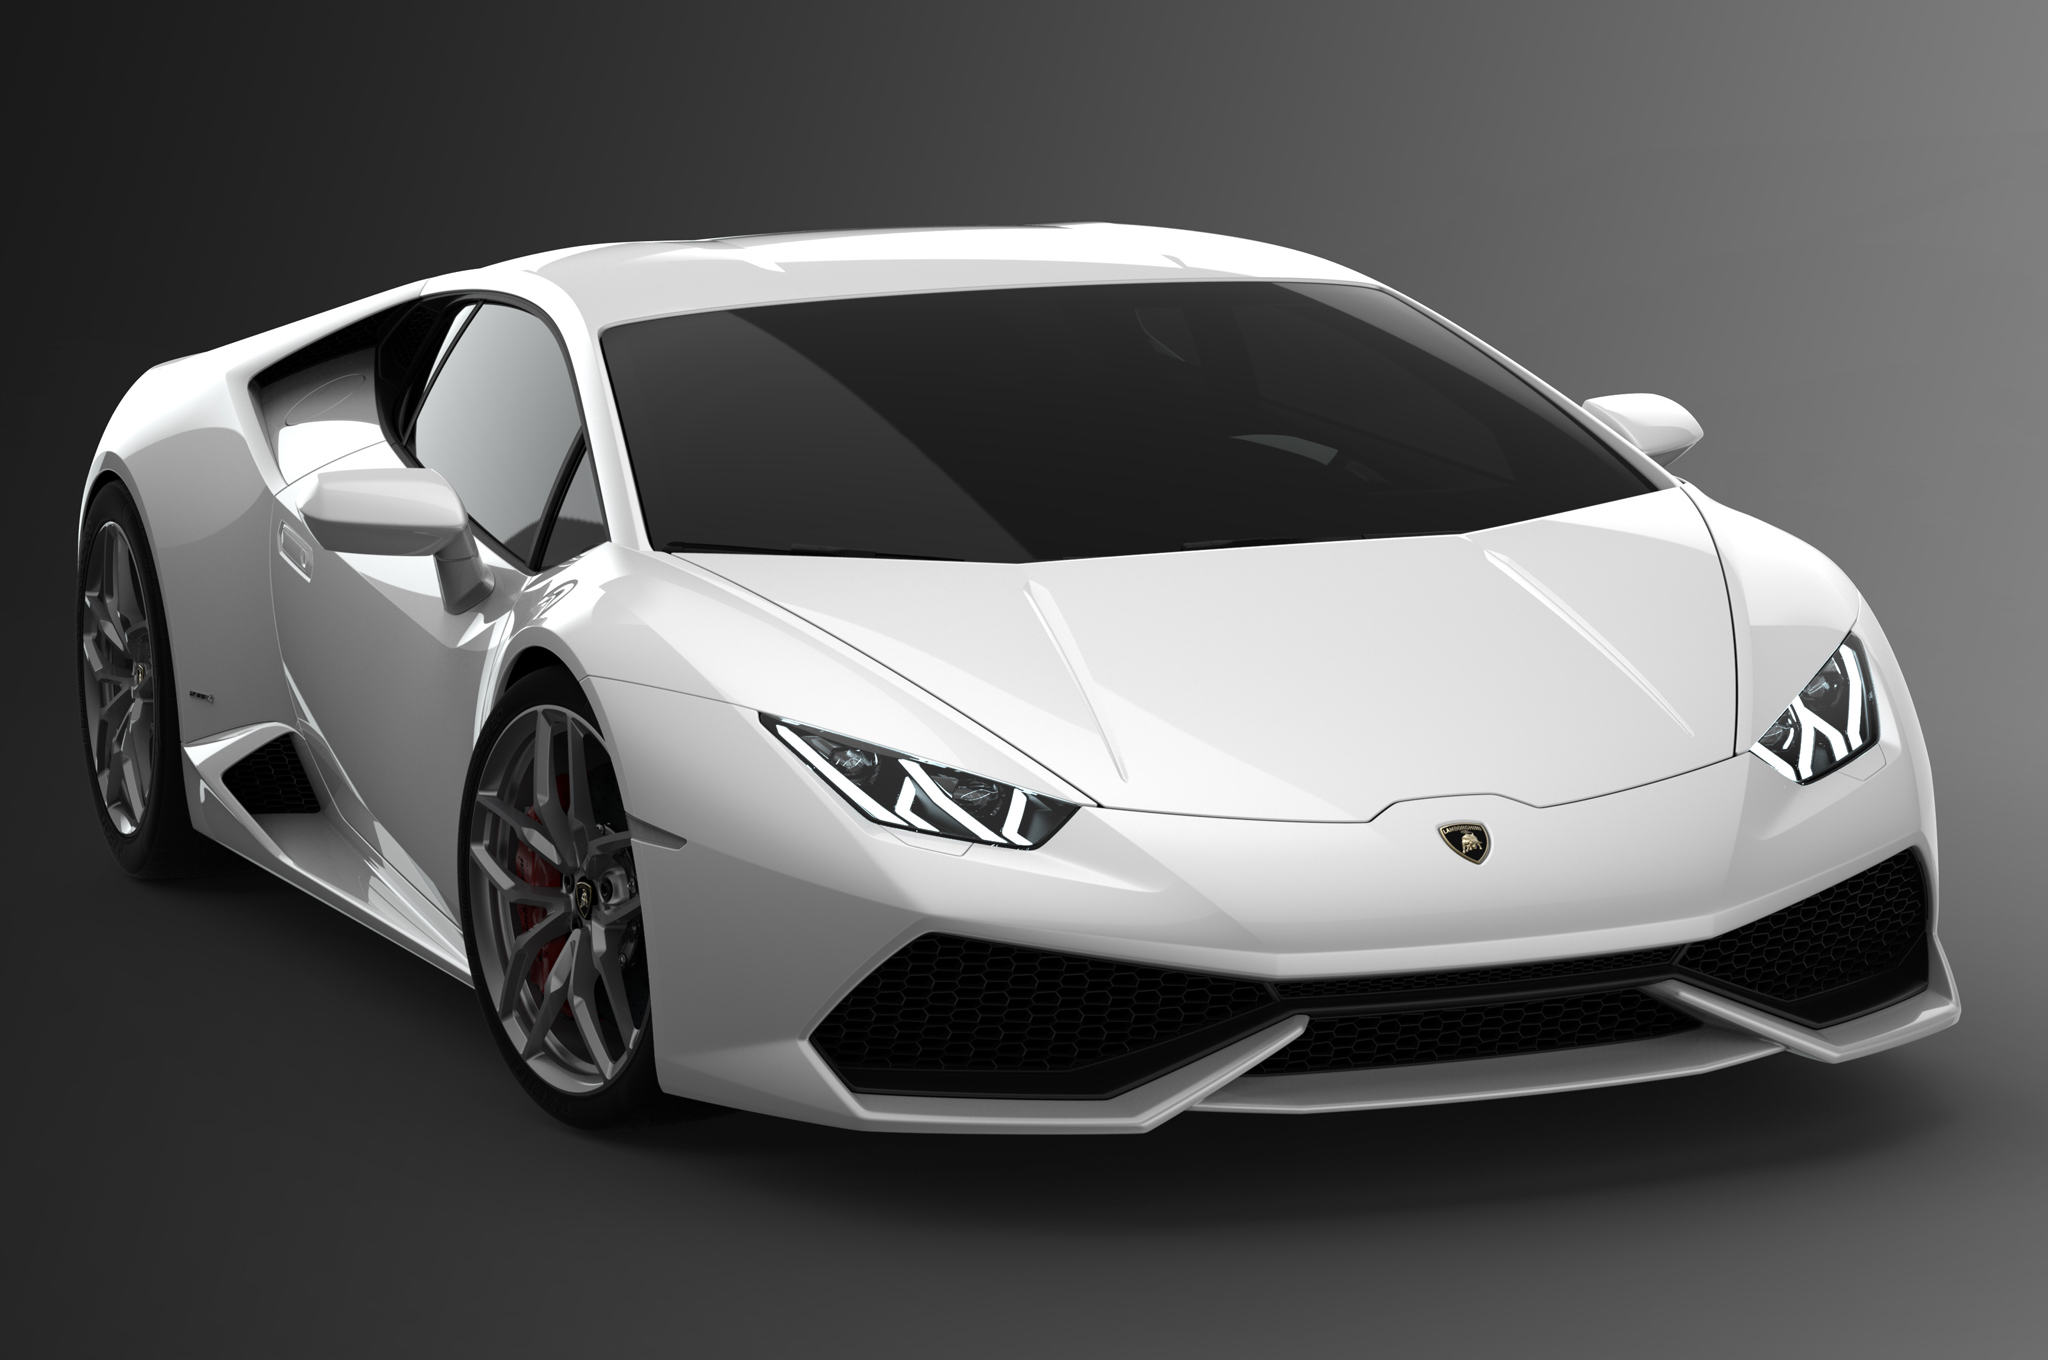 White Lamborghini Super Car 124.96 Kb